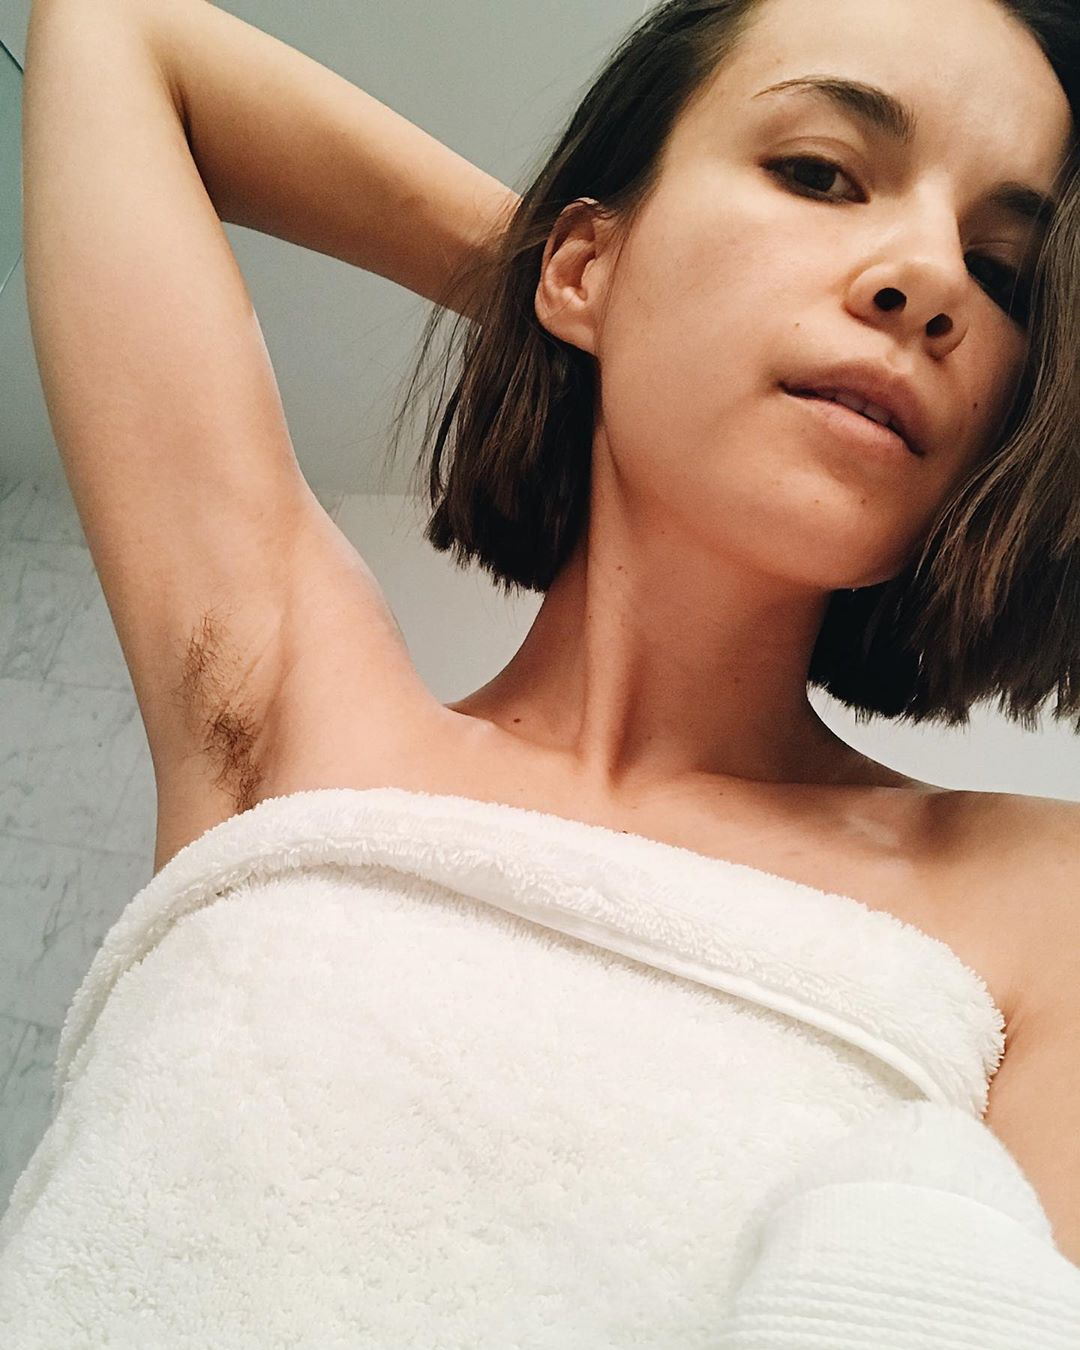 ingrid-nilsen-armpit-hair